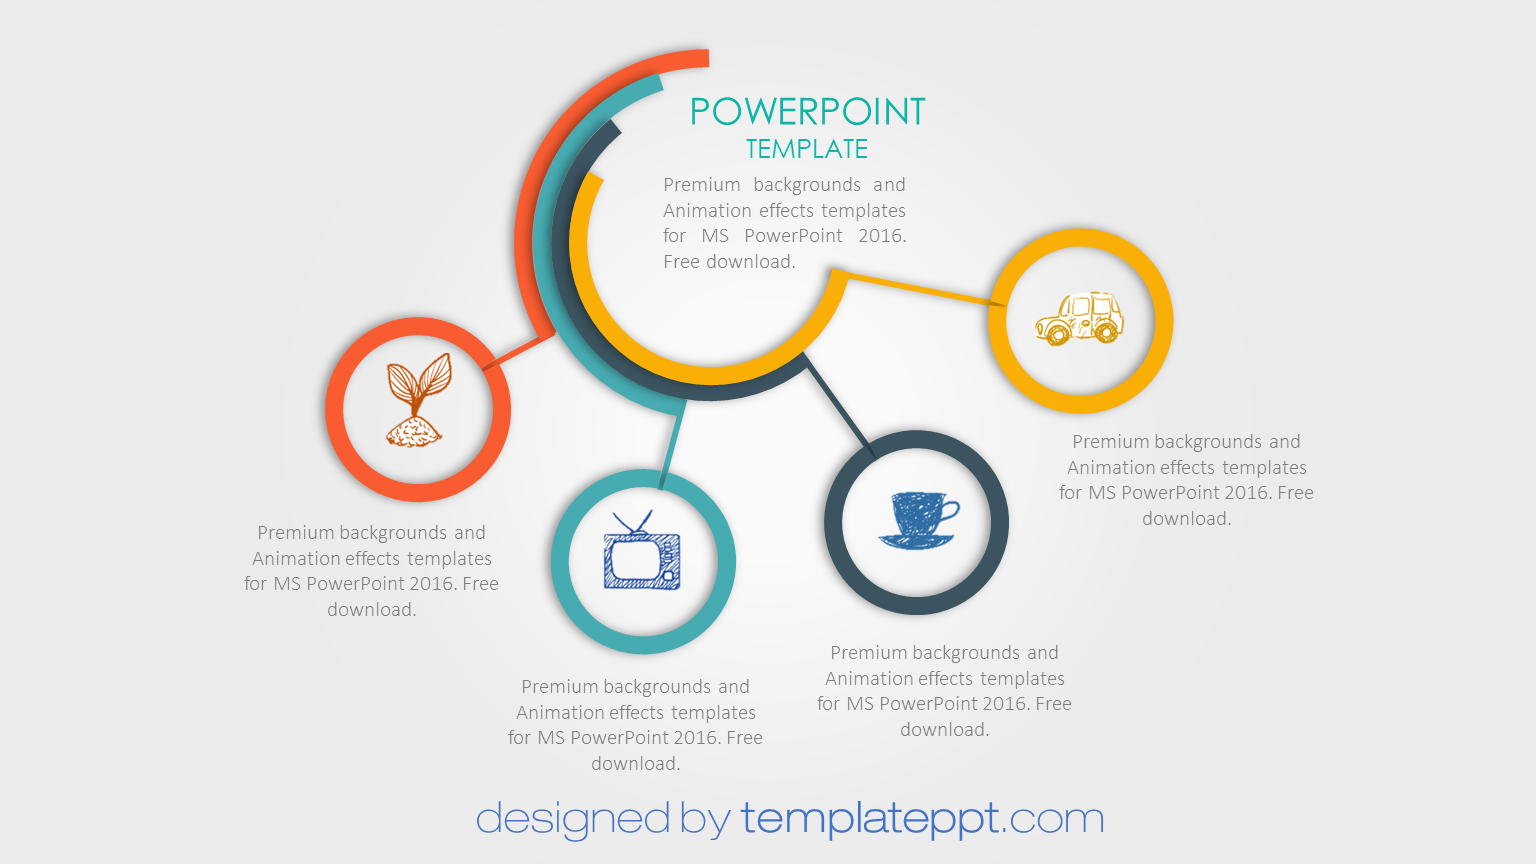 Download ppt template free doritrcatodos download ppt template free toneelgroepblik Image collections